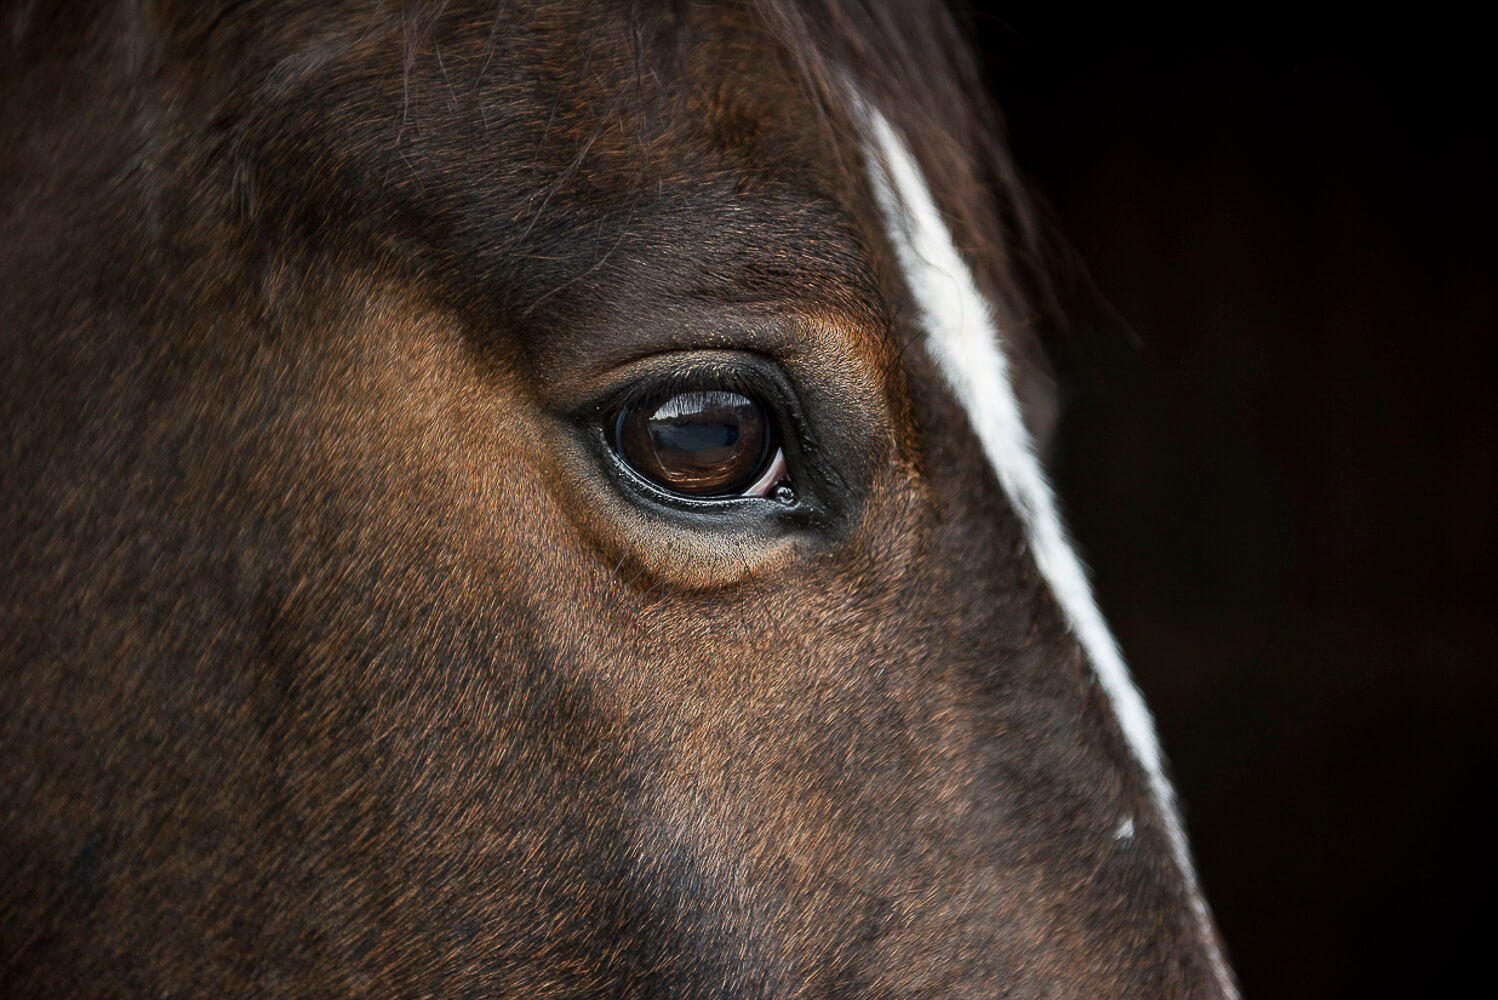 Animal Portraits: The Study of a Horse 7